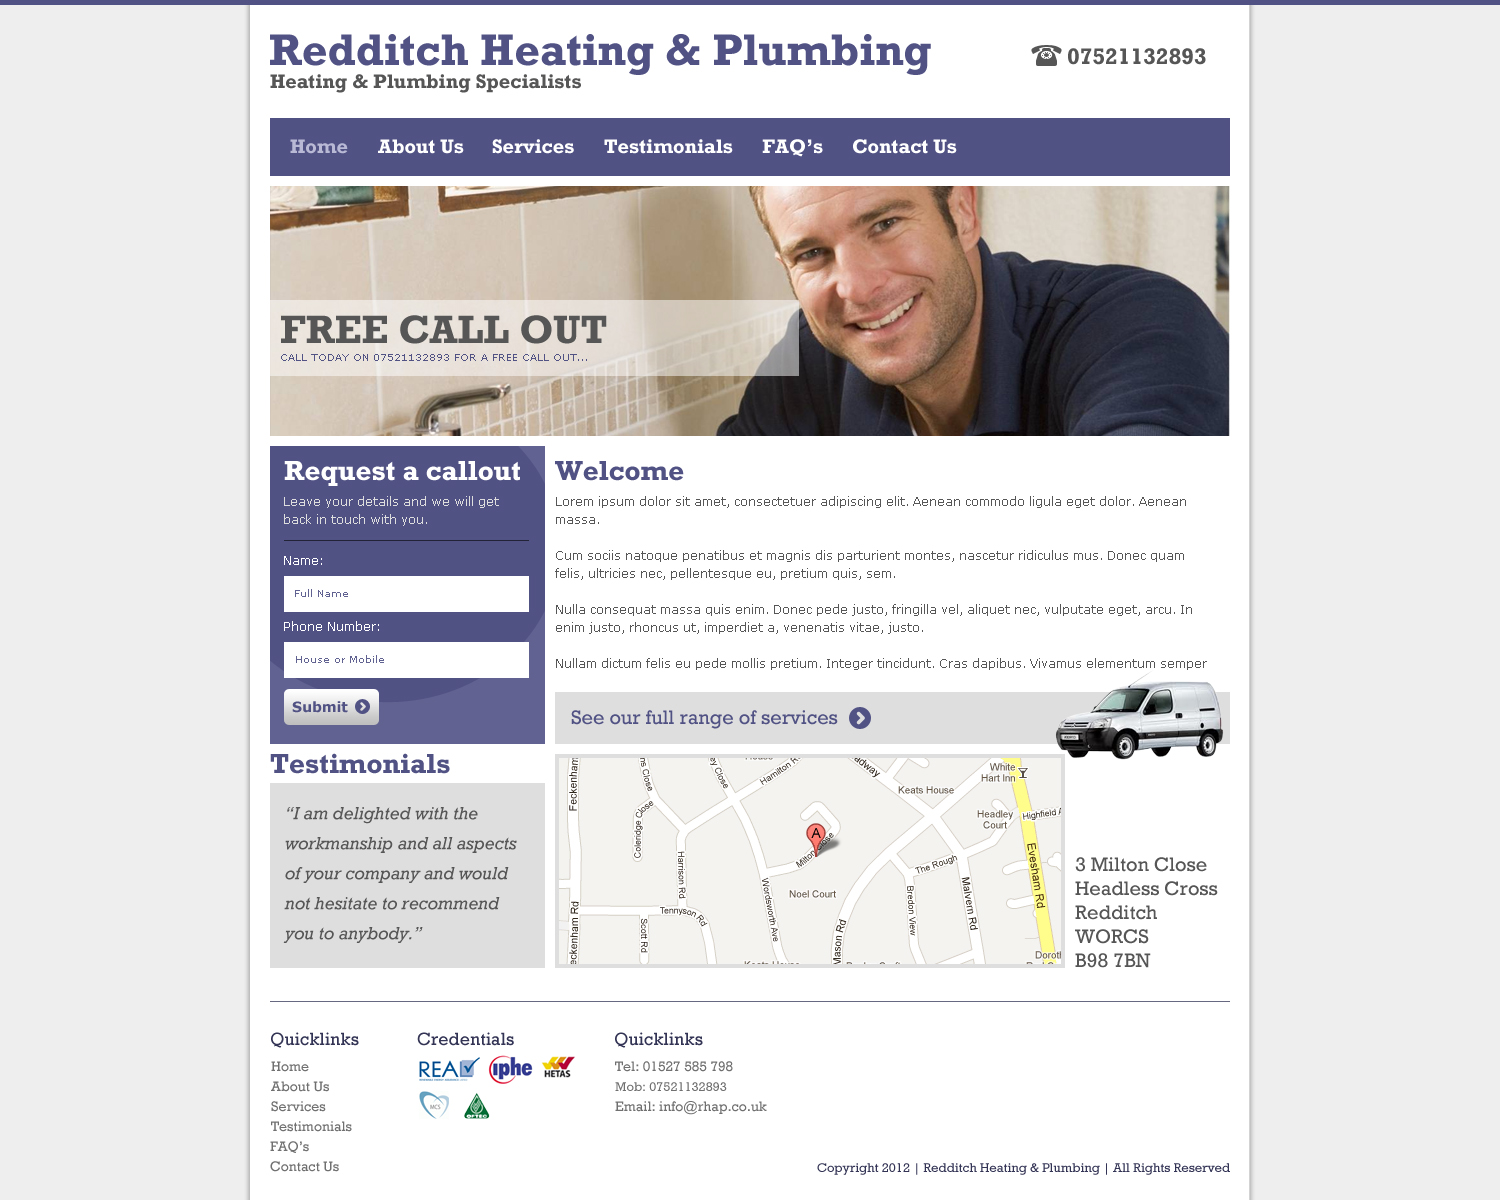 redditch chatrooms Ihg | intercontinental hotels group - chat.